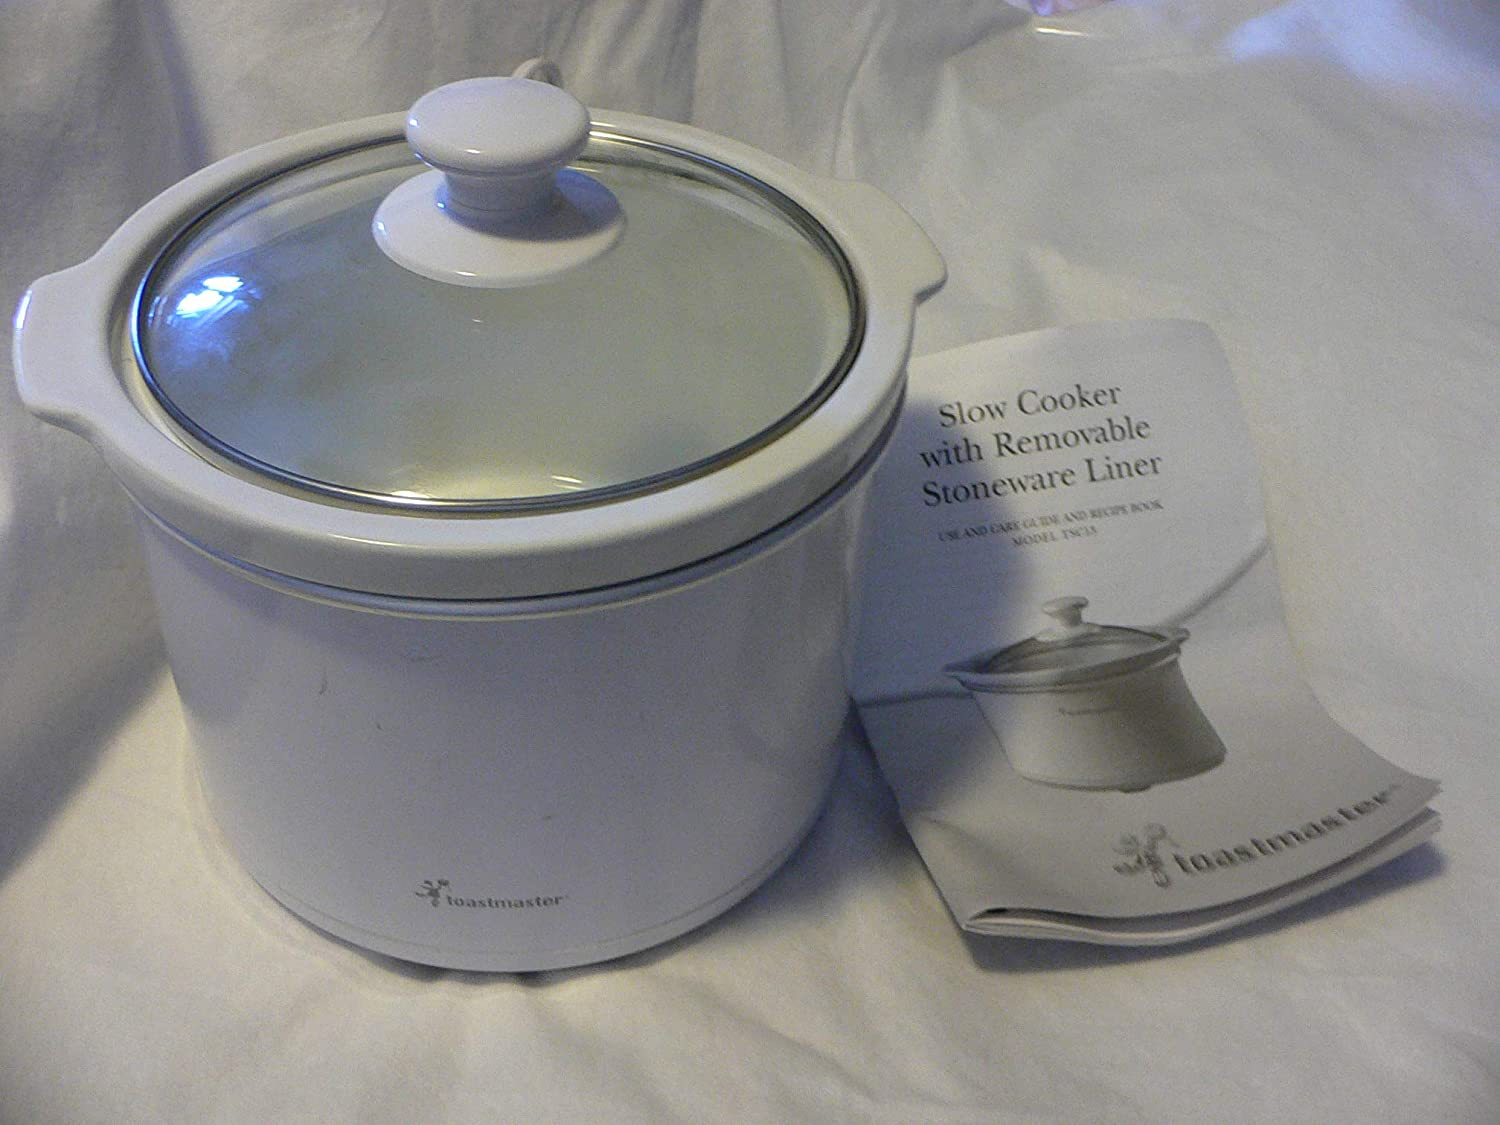 Toastmaster TSC15 1.5-Quart Slow Cooker